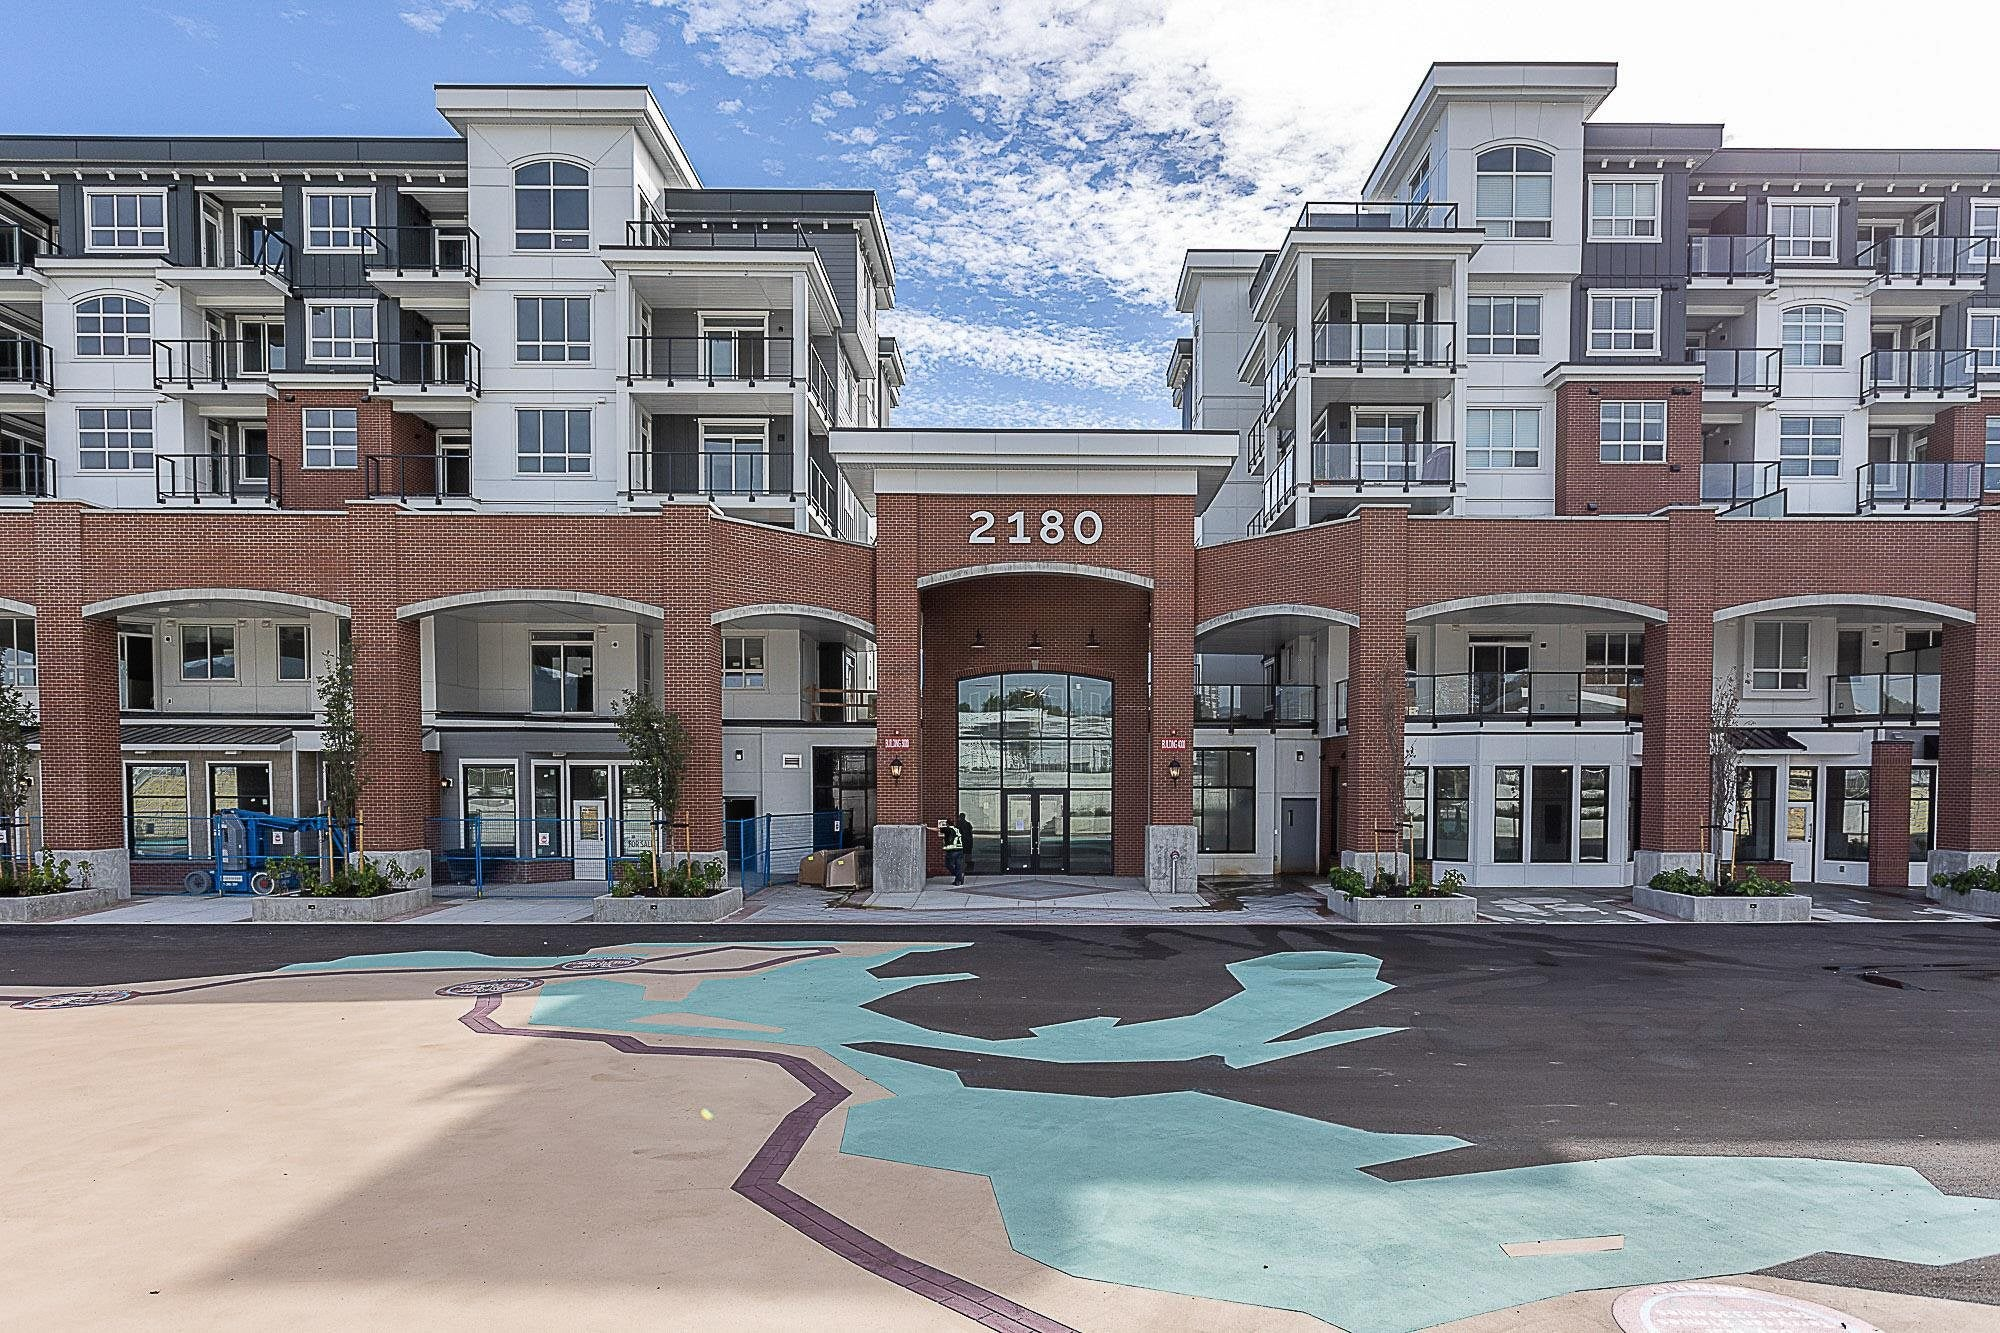 3603 2180 KELLY AVENUE - Central Pt Coquitlam Apartment/Condo for sale, 1 Bedroom (R2627534)